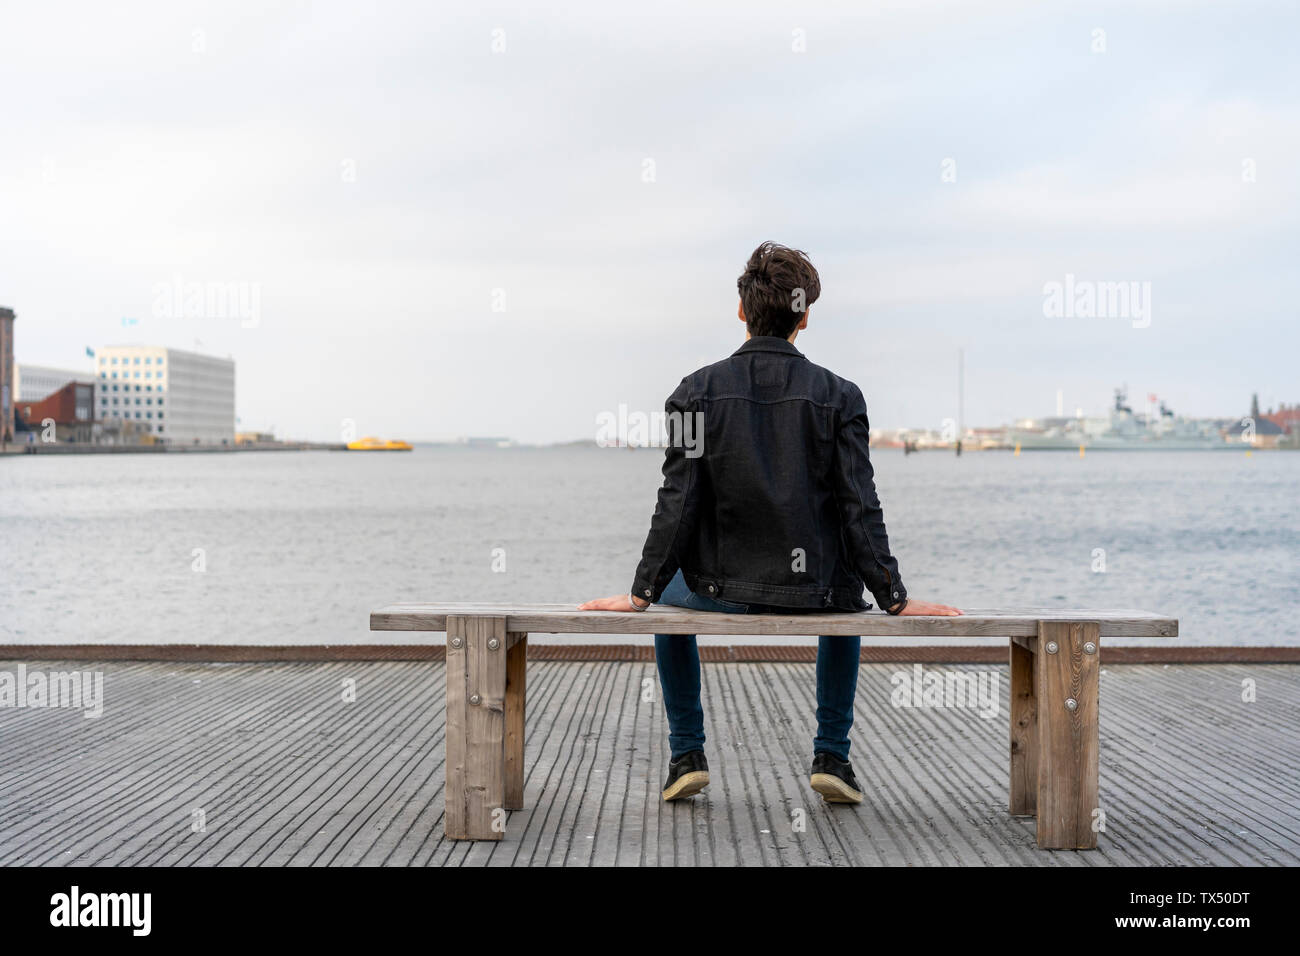 Denmark, Copenhagen, rear view of young man sitting on a bench at the waterfront - Stock Image